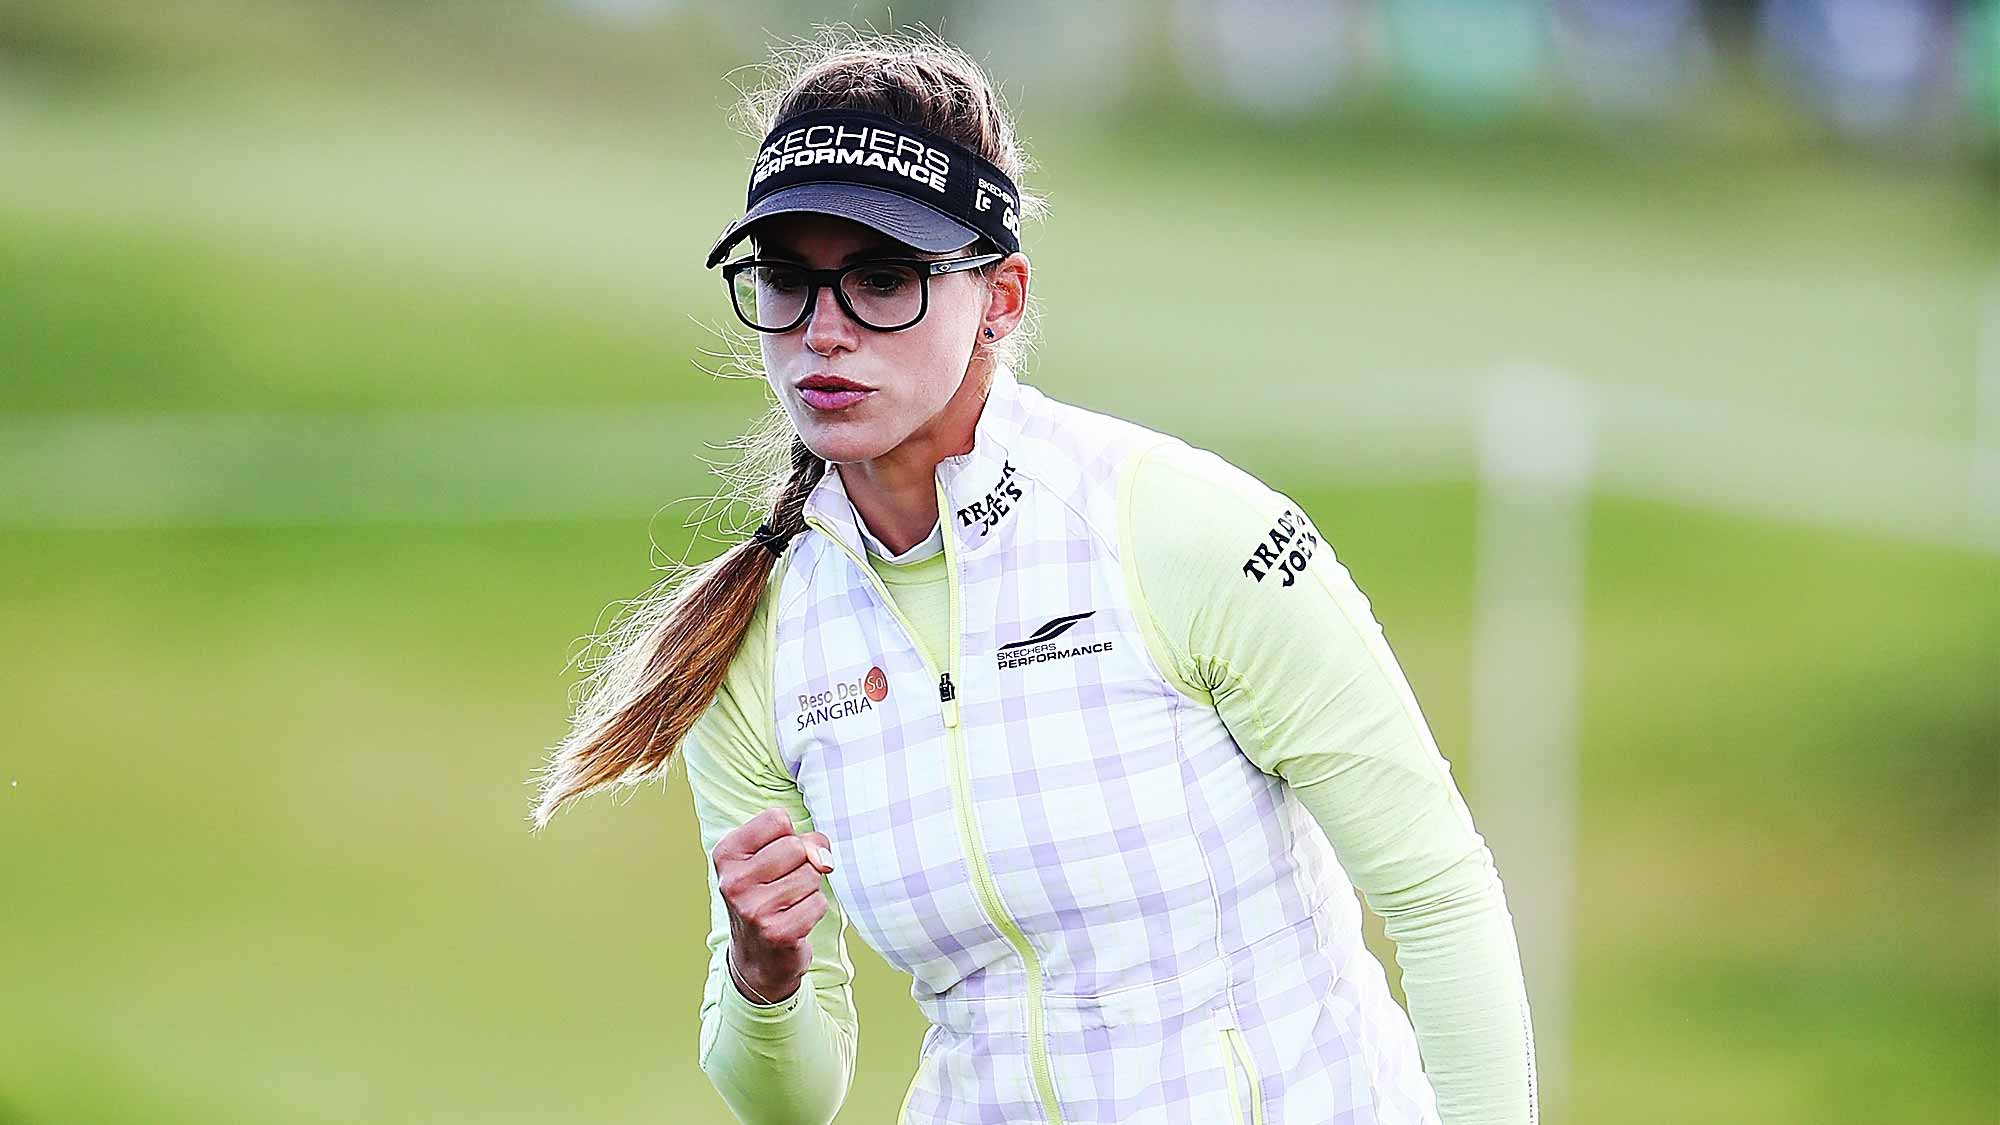 Belen Mozo of Spain celebrates after making a putt during day two of the New Zealand Women's Open at Windross Farm